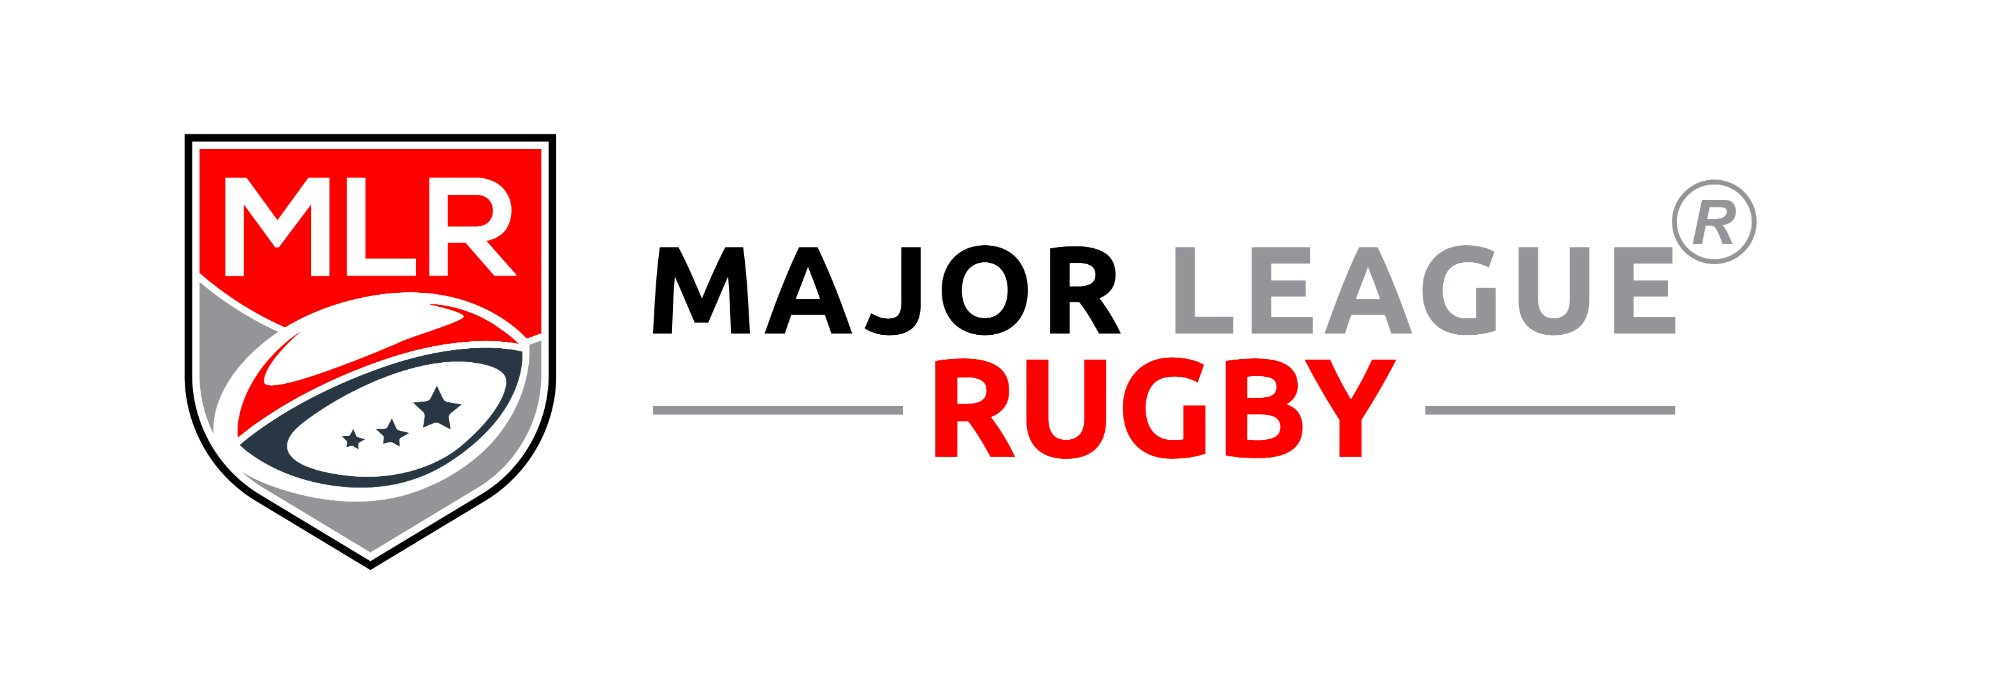 MLR. The new professional league for USA rugby union.